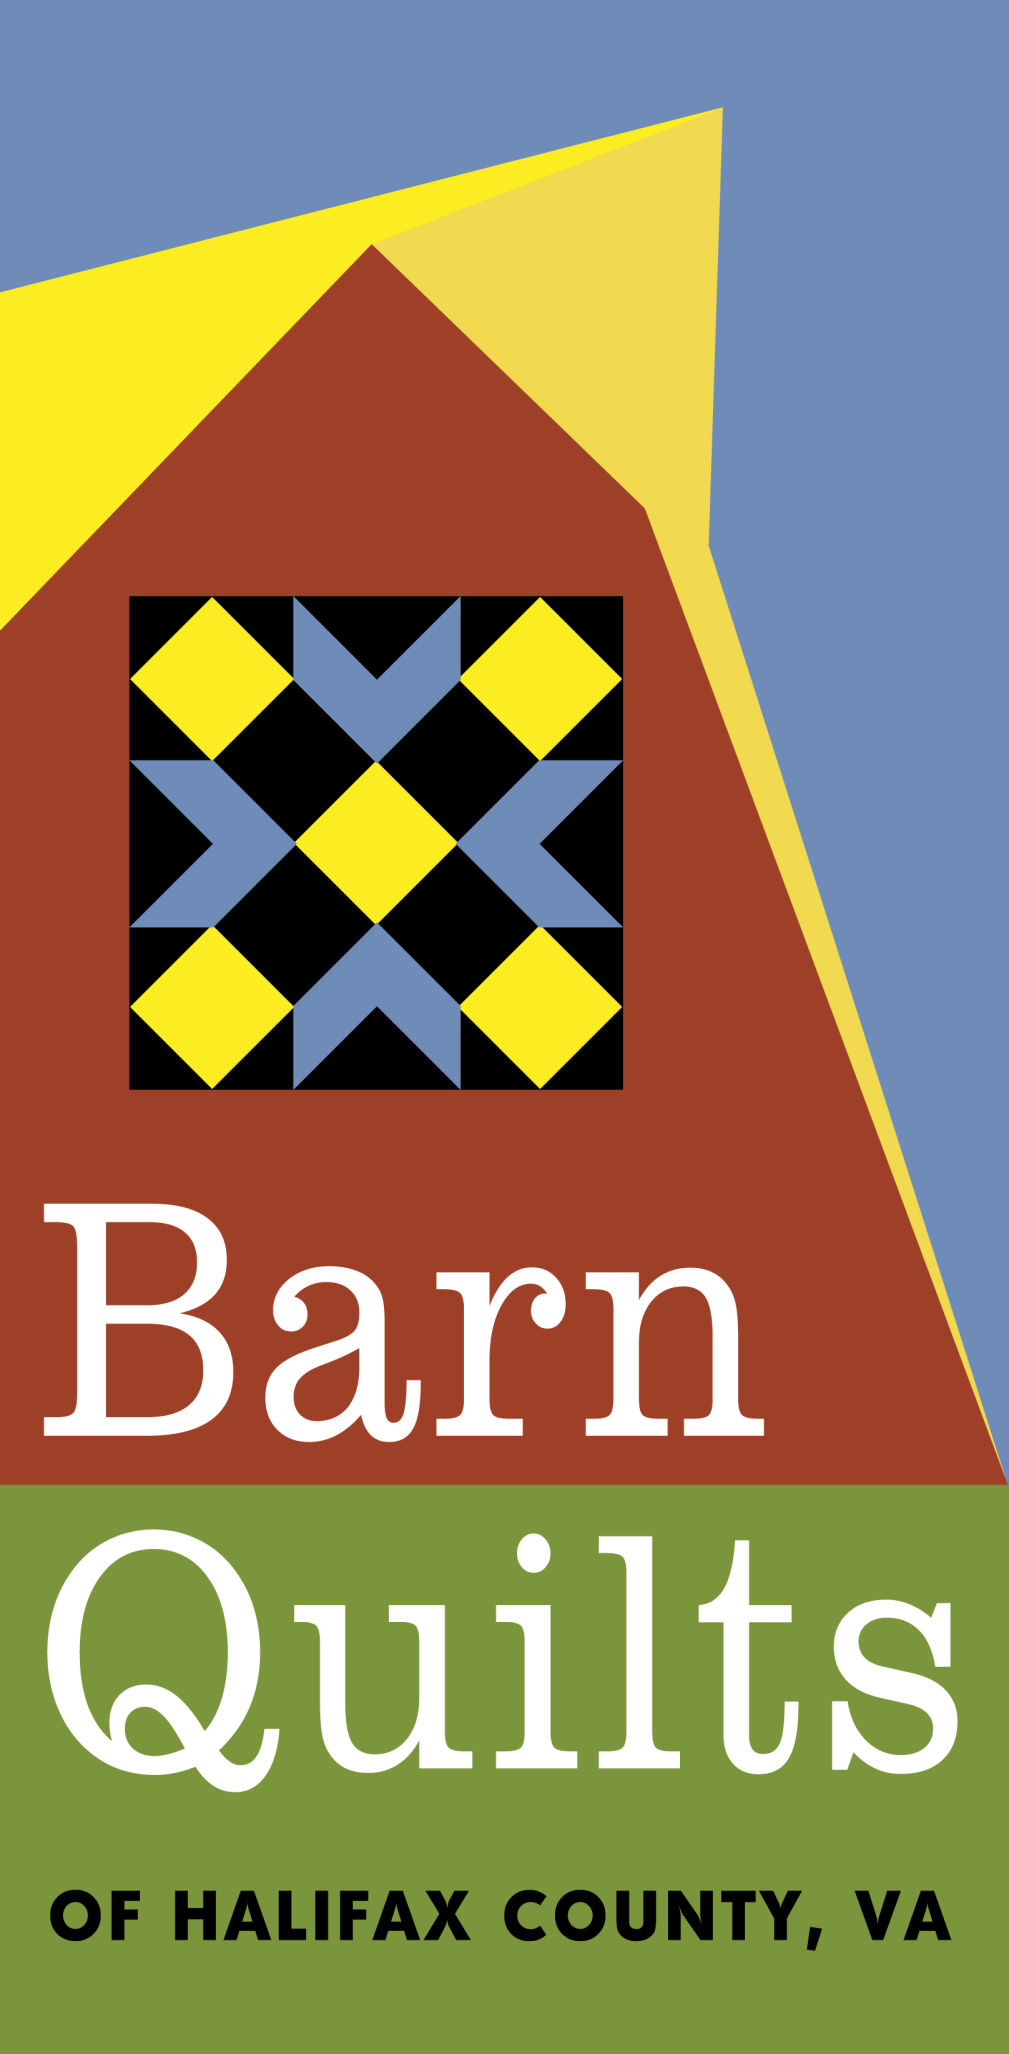 Barn Quilt Trail Continues To Grow Society Yourgv Com